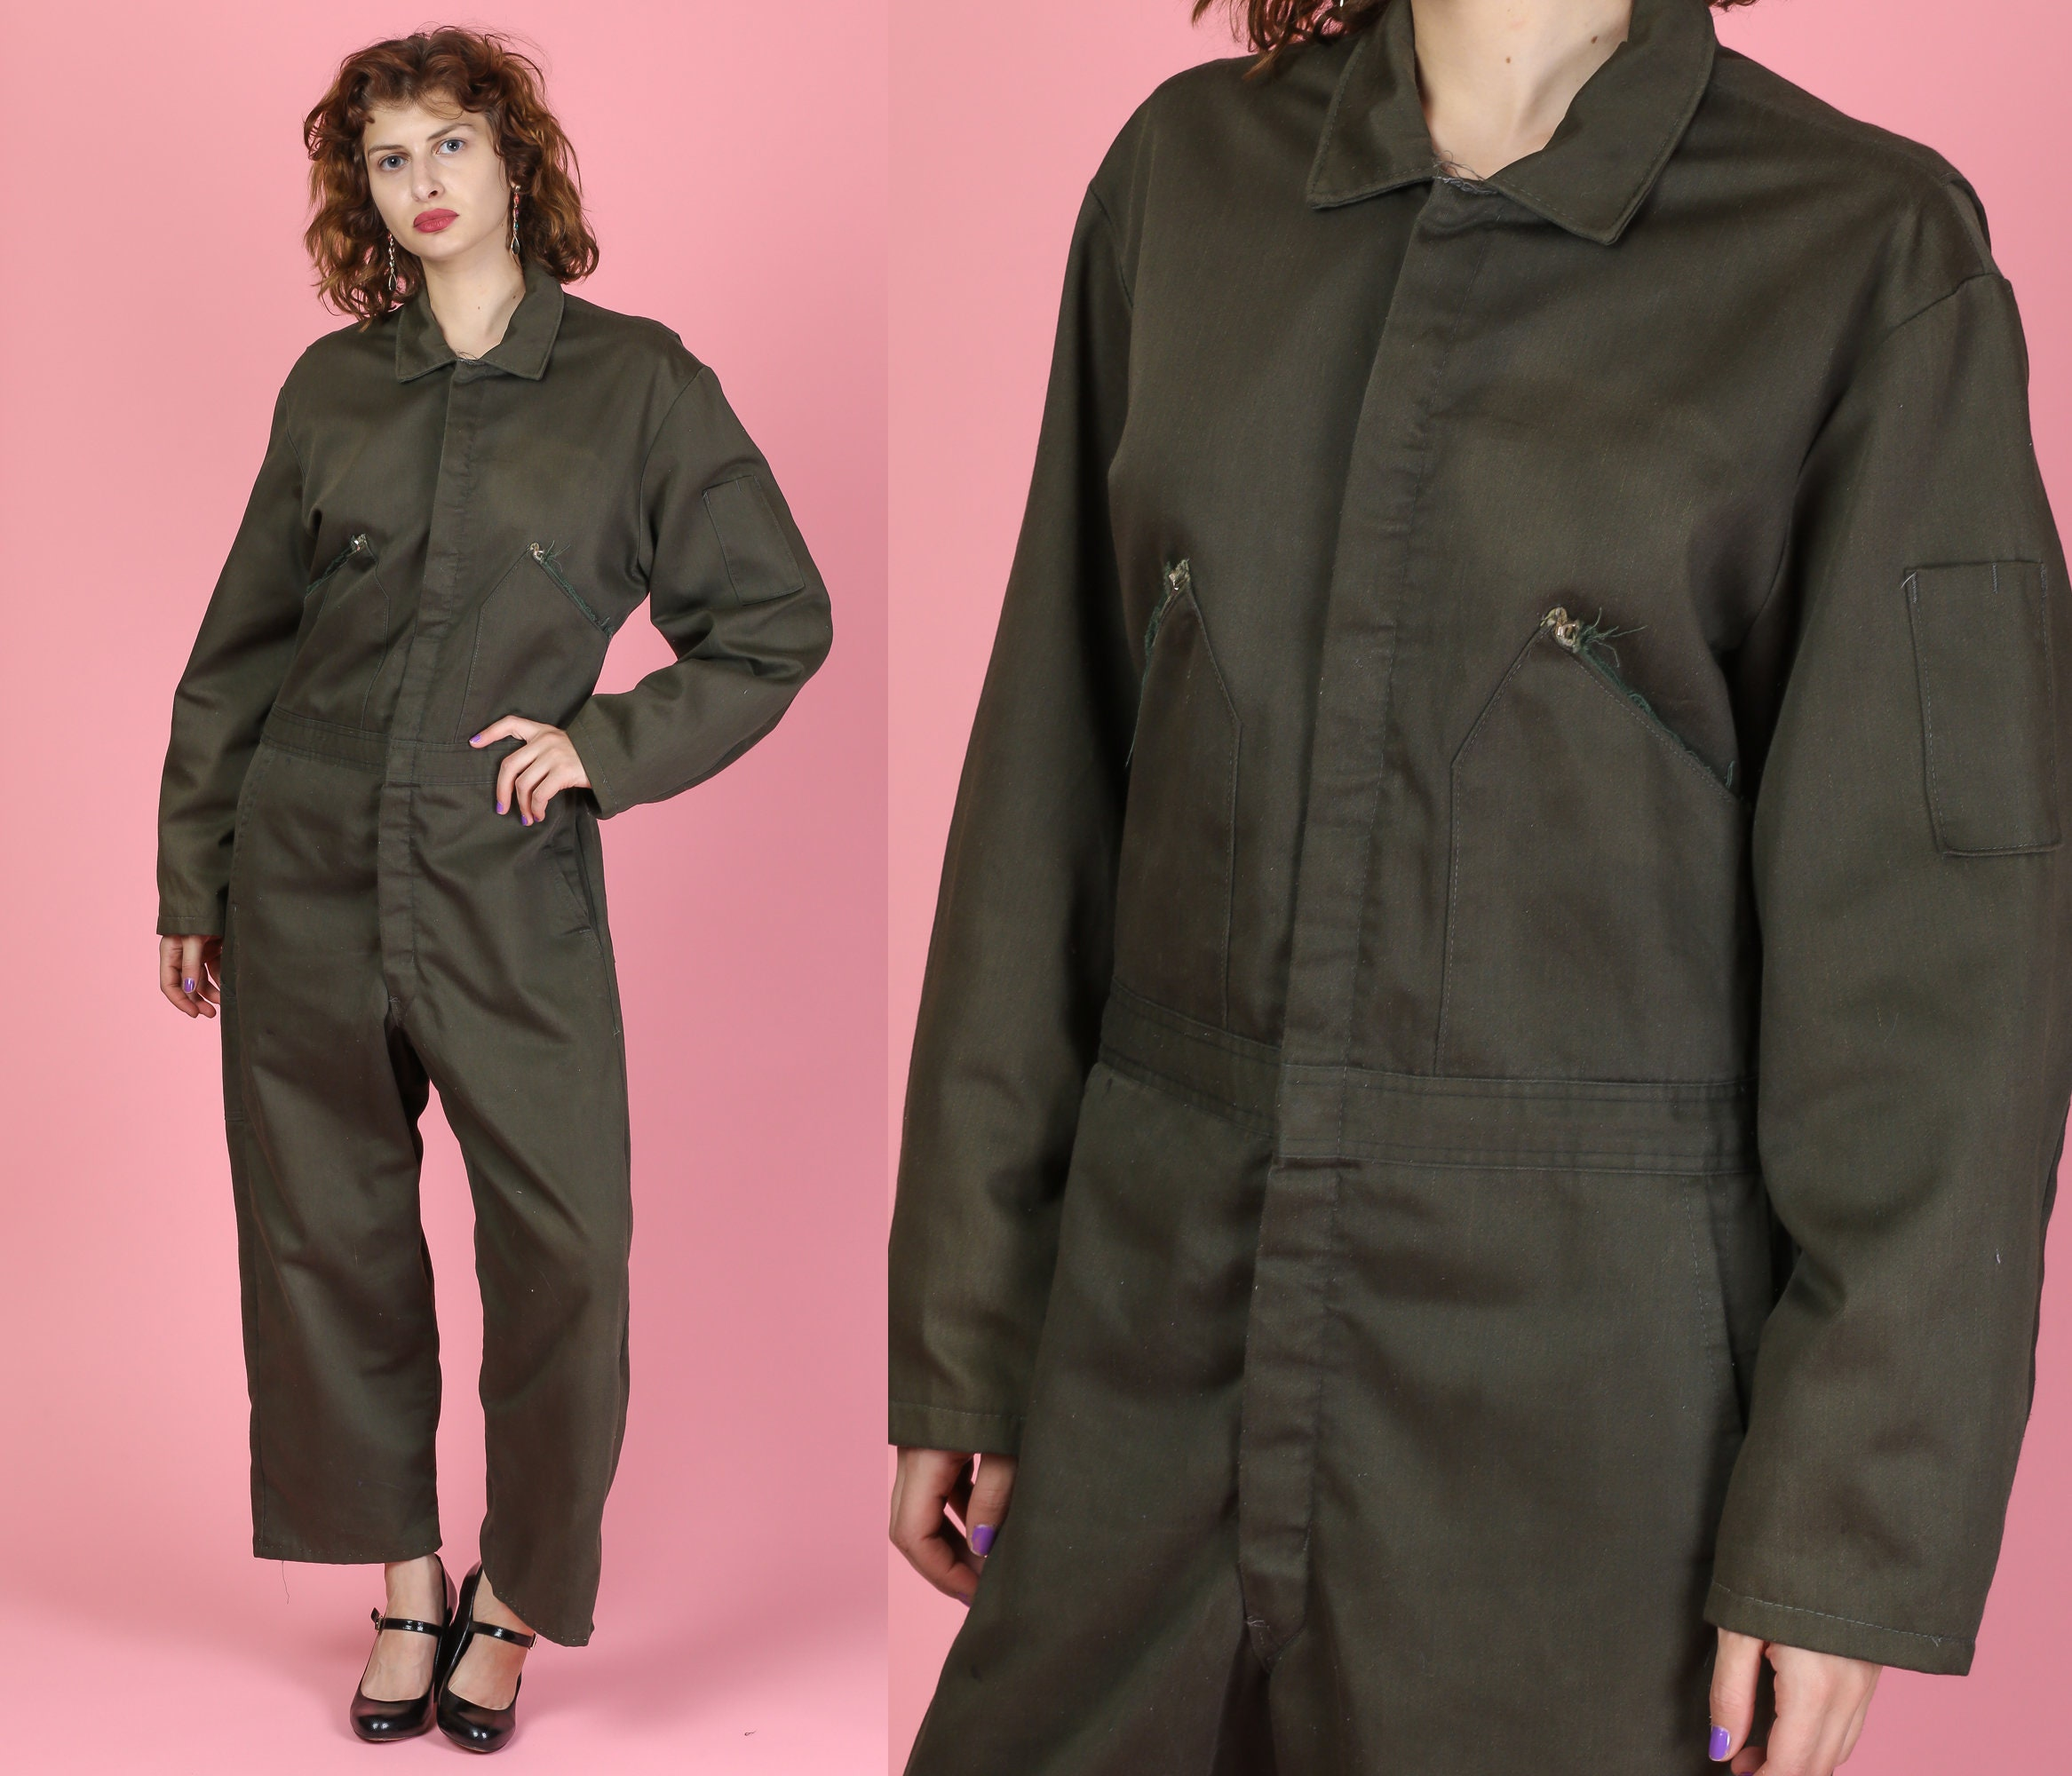 1950s Mens Suits & Sport Coats | 50s Suits & Blazers Vintage 1950S Walls Blizzard Pruf Coveralls - Mens Medium  Olive Drab Snow Suit Winterwear Jumpsuit Unisex Ski Gear $34.95 AT vintagedancer.com